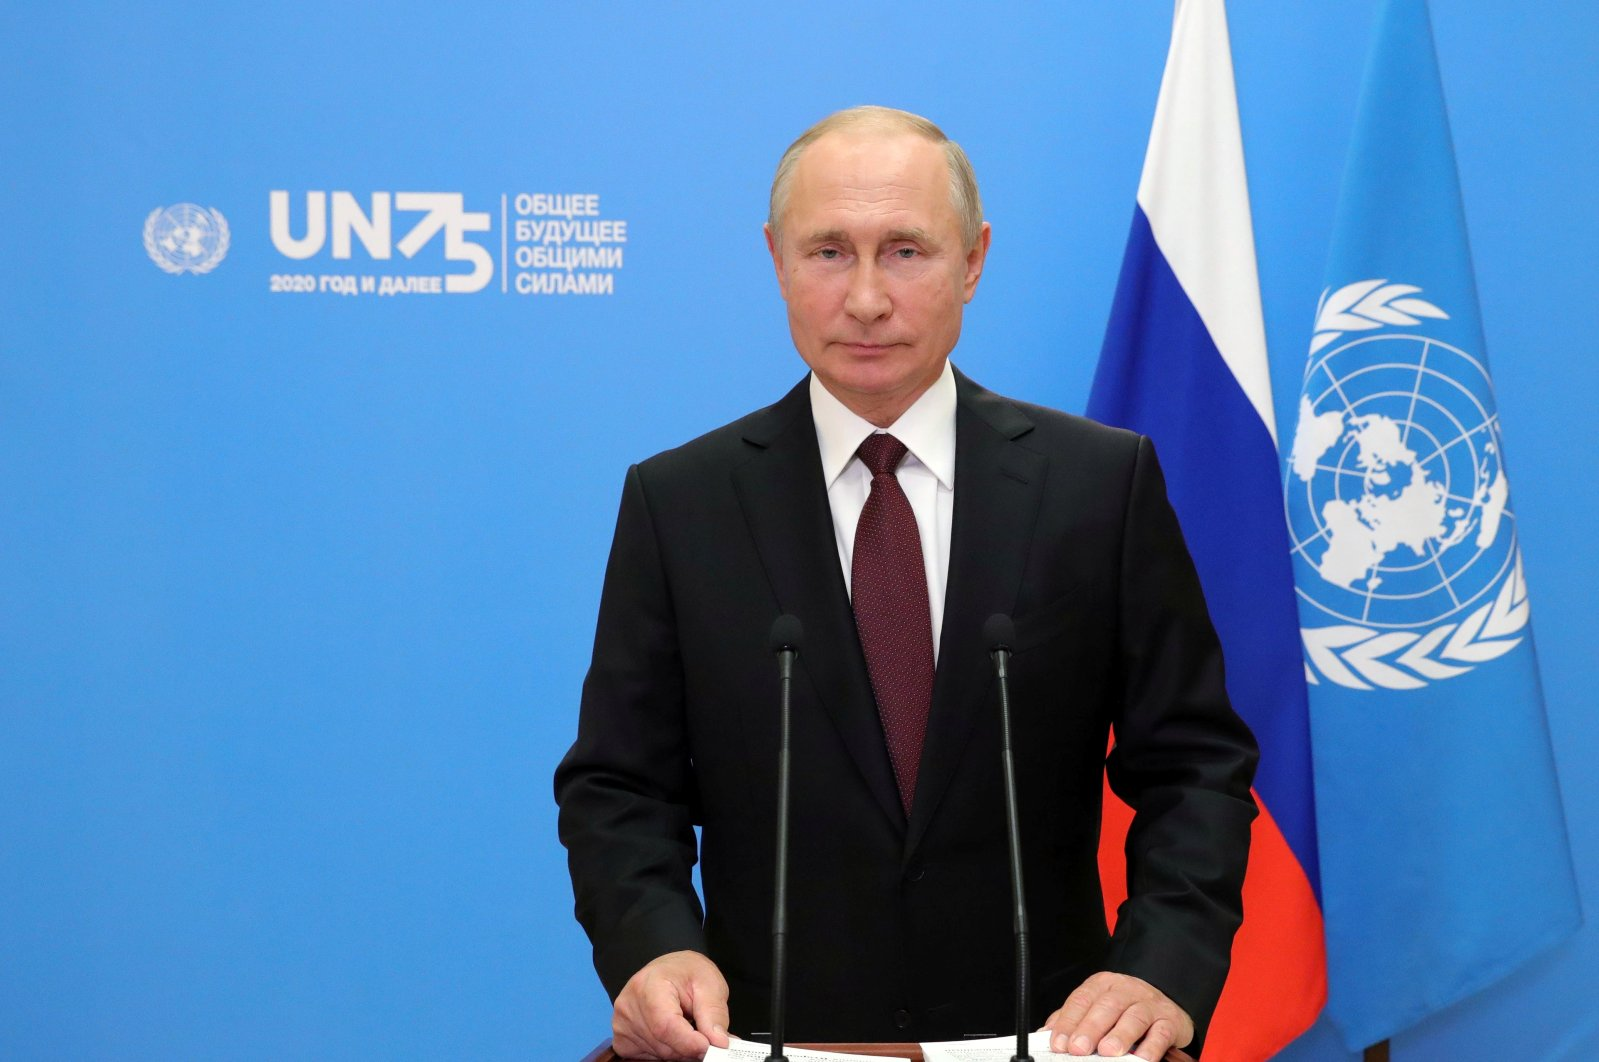 Russia's President Vladimir Putin is seen during his video address to the United Nations General Assembly in Moscow, Russia, Sept. 22, 2020.